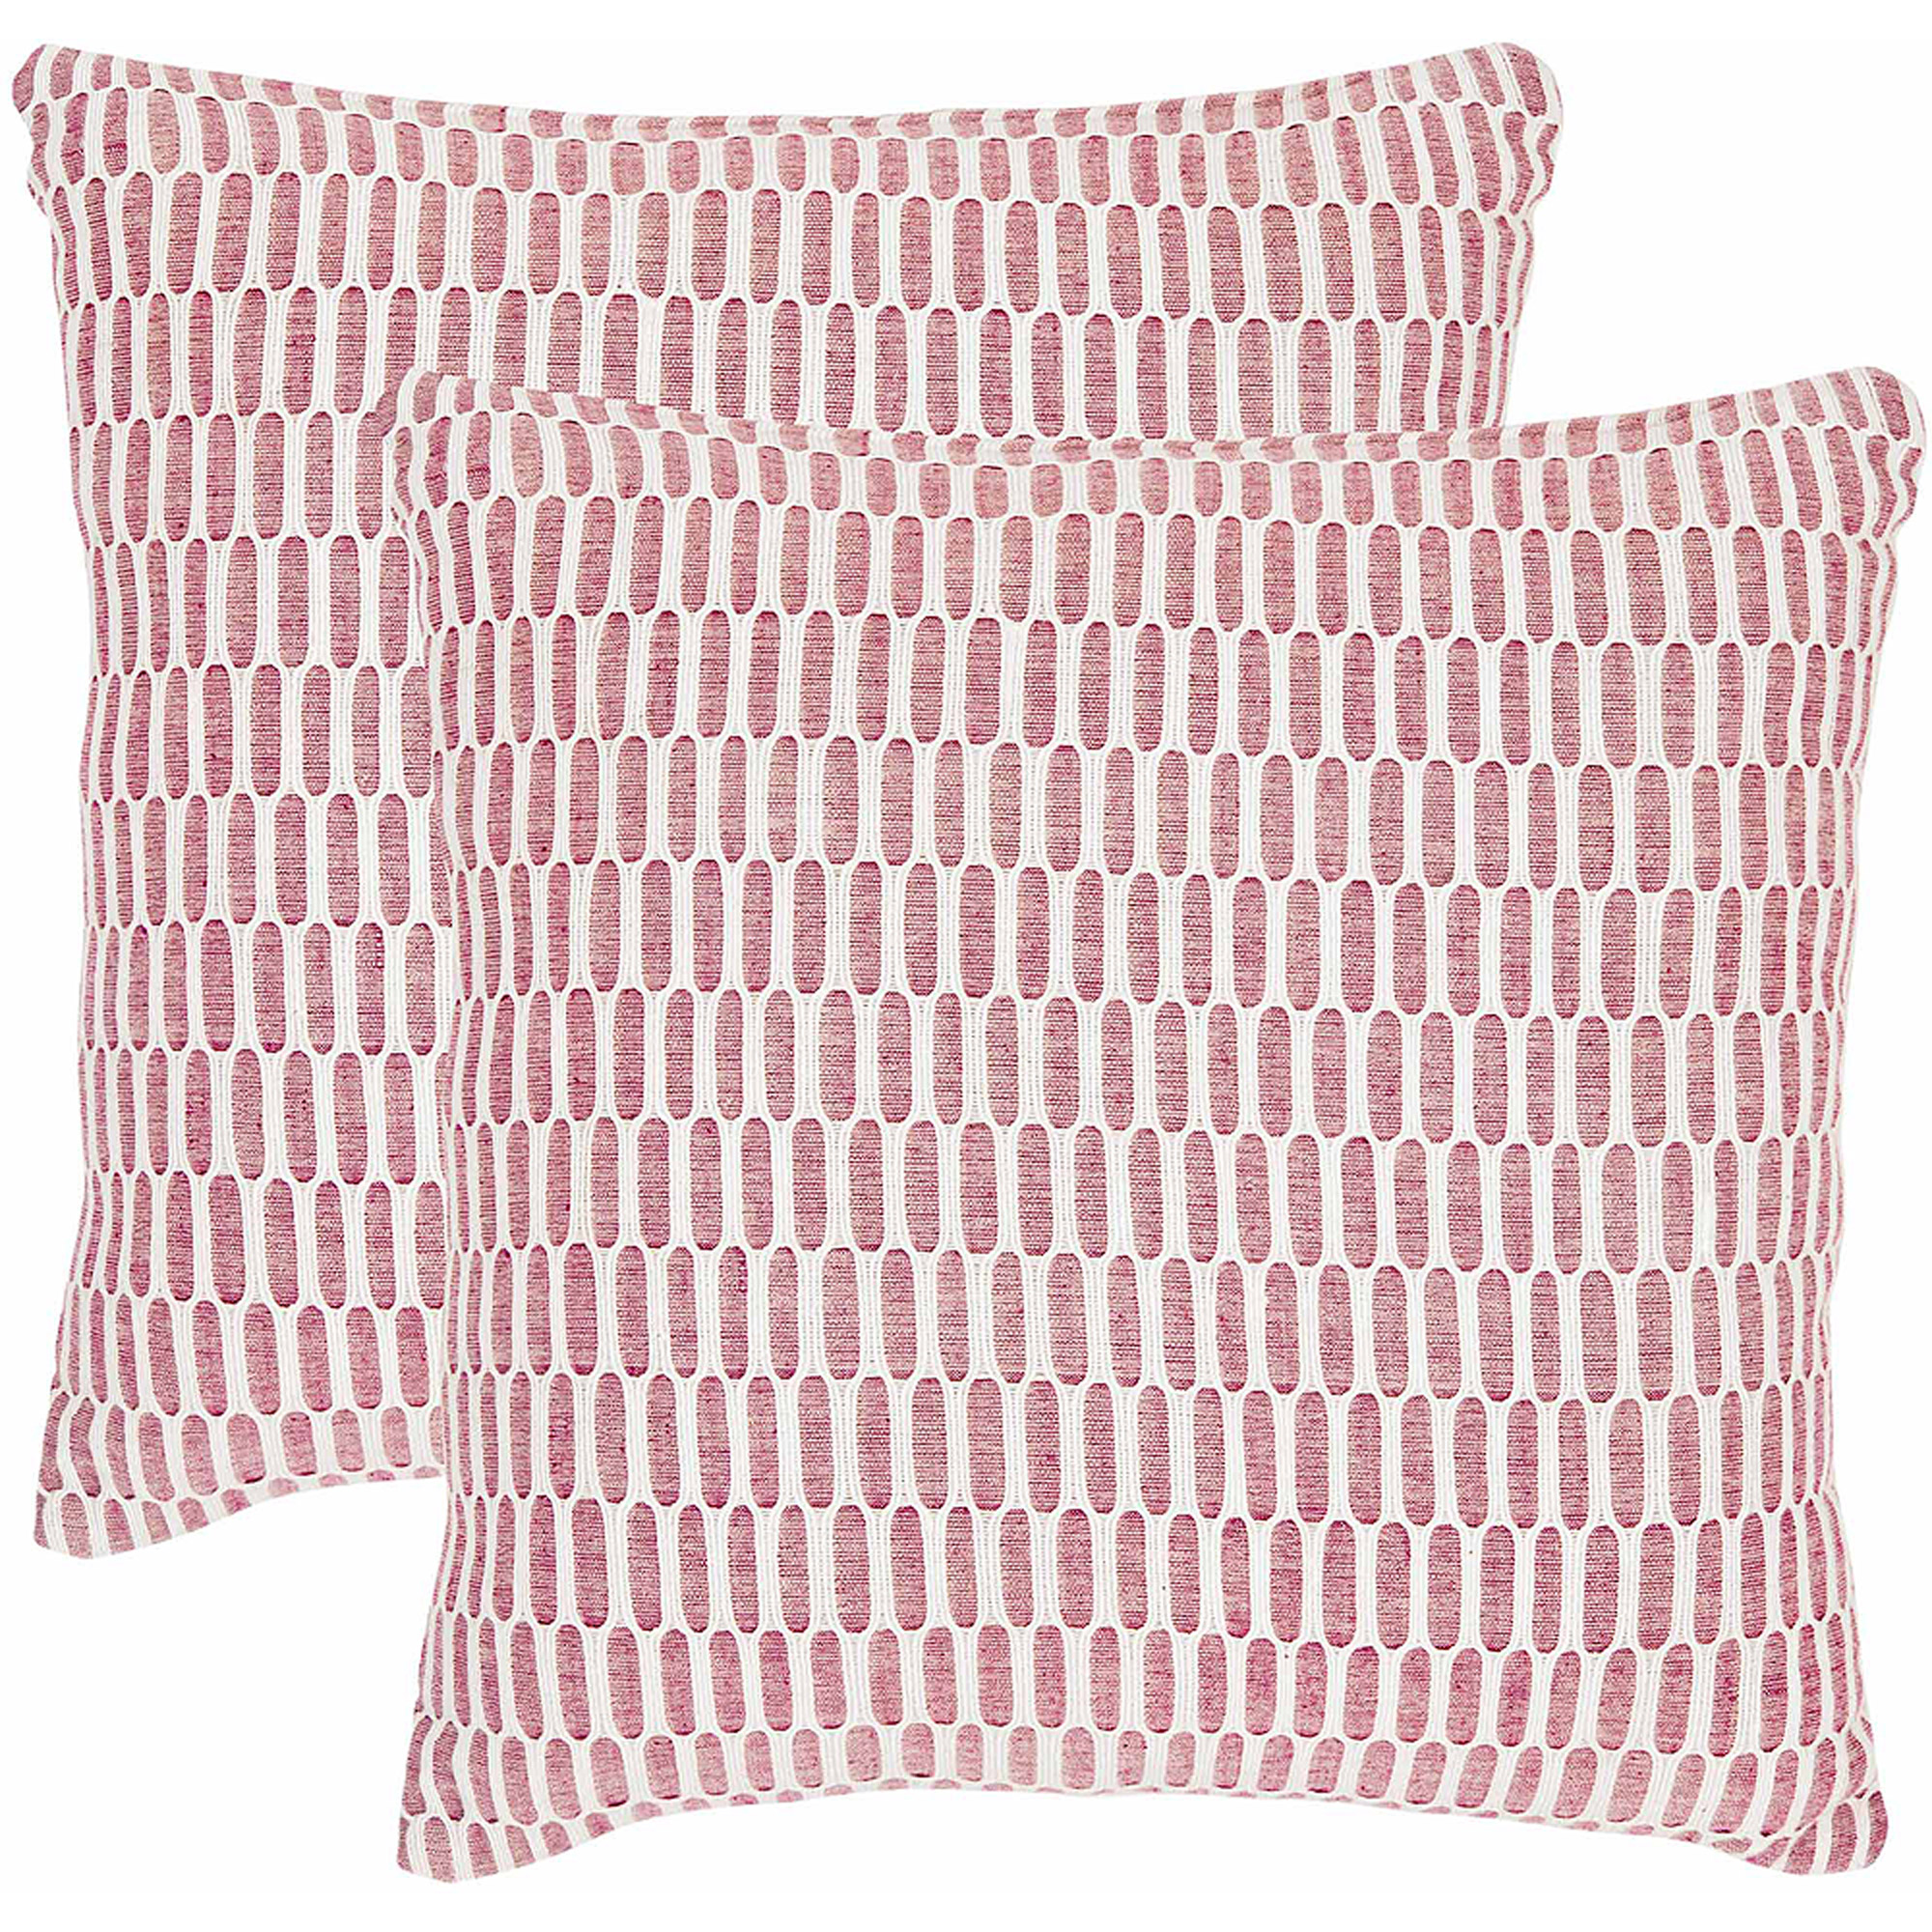 Safavieh Honeycomb Pillow, Red, Set of 2